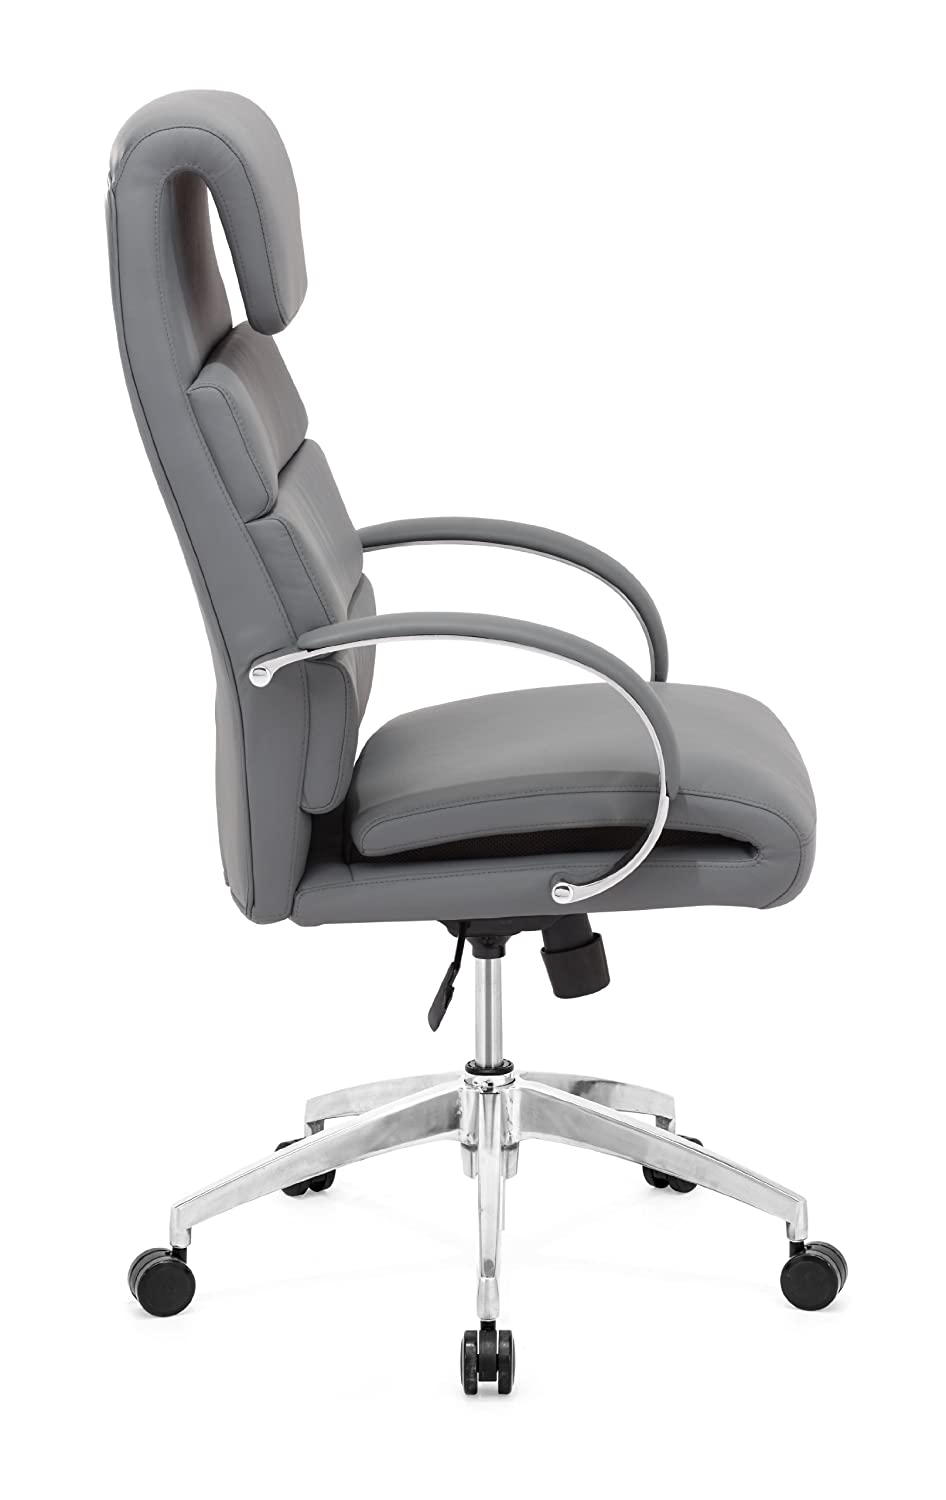 comfort office chair. Amazon.com: Zuo MODERN Lider Comfort Office Chair, Gray: Kitchen \u0026 Dining Chair E